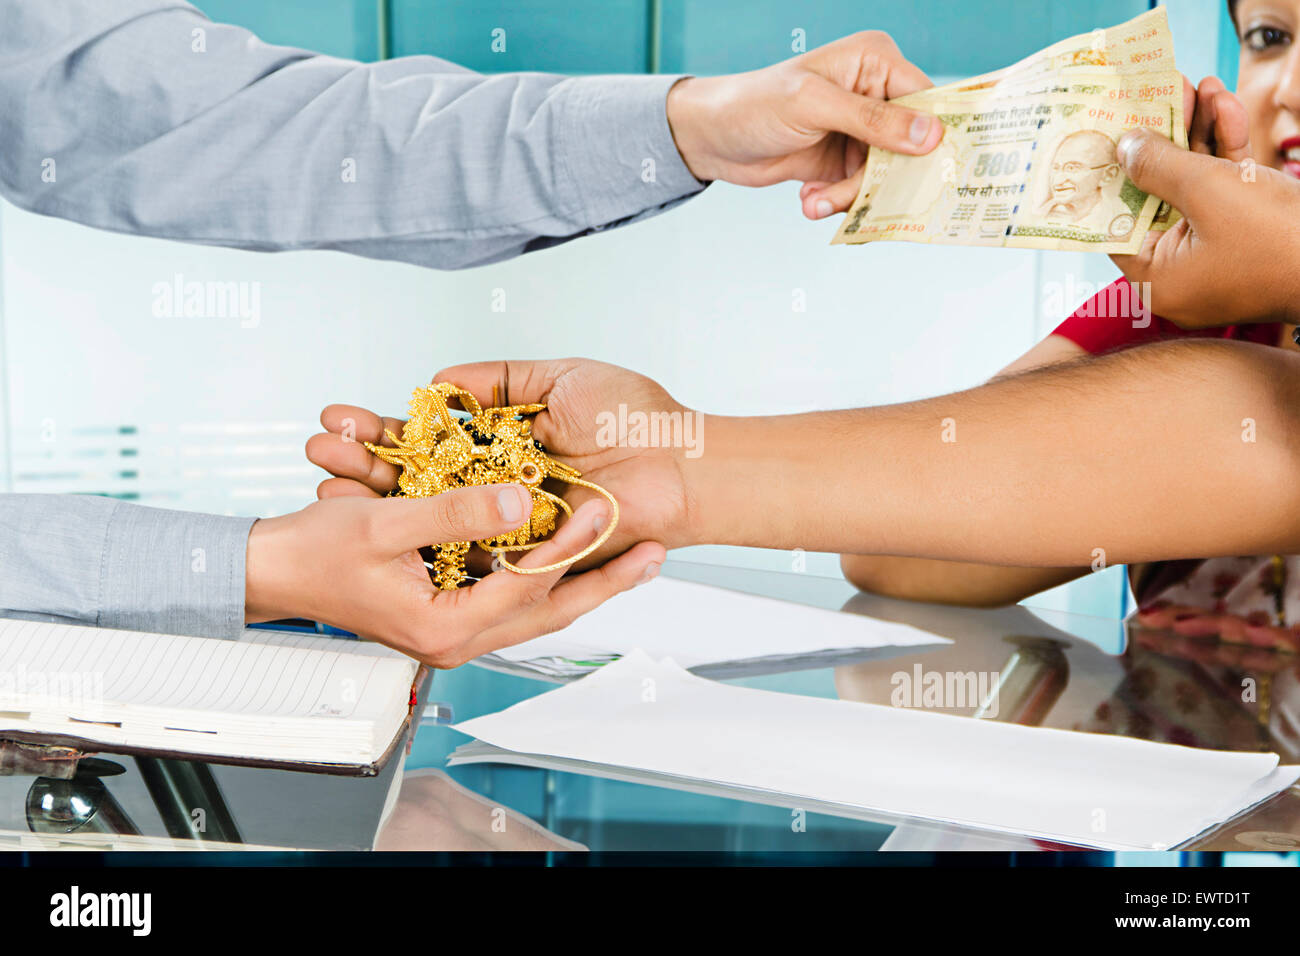 Cash loans same day payout south africa photo 3